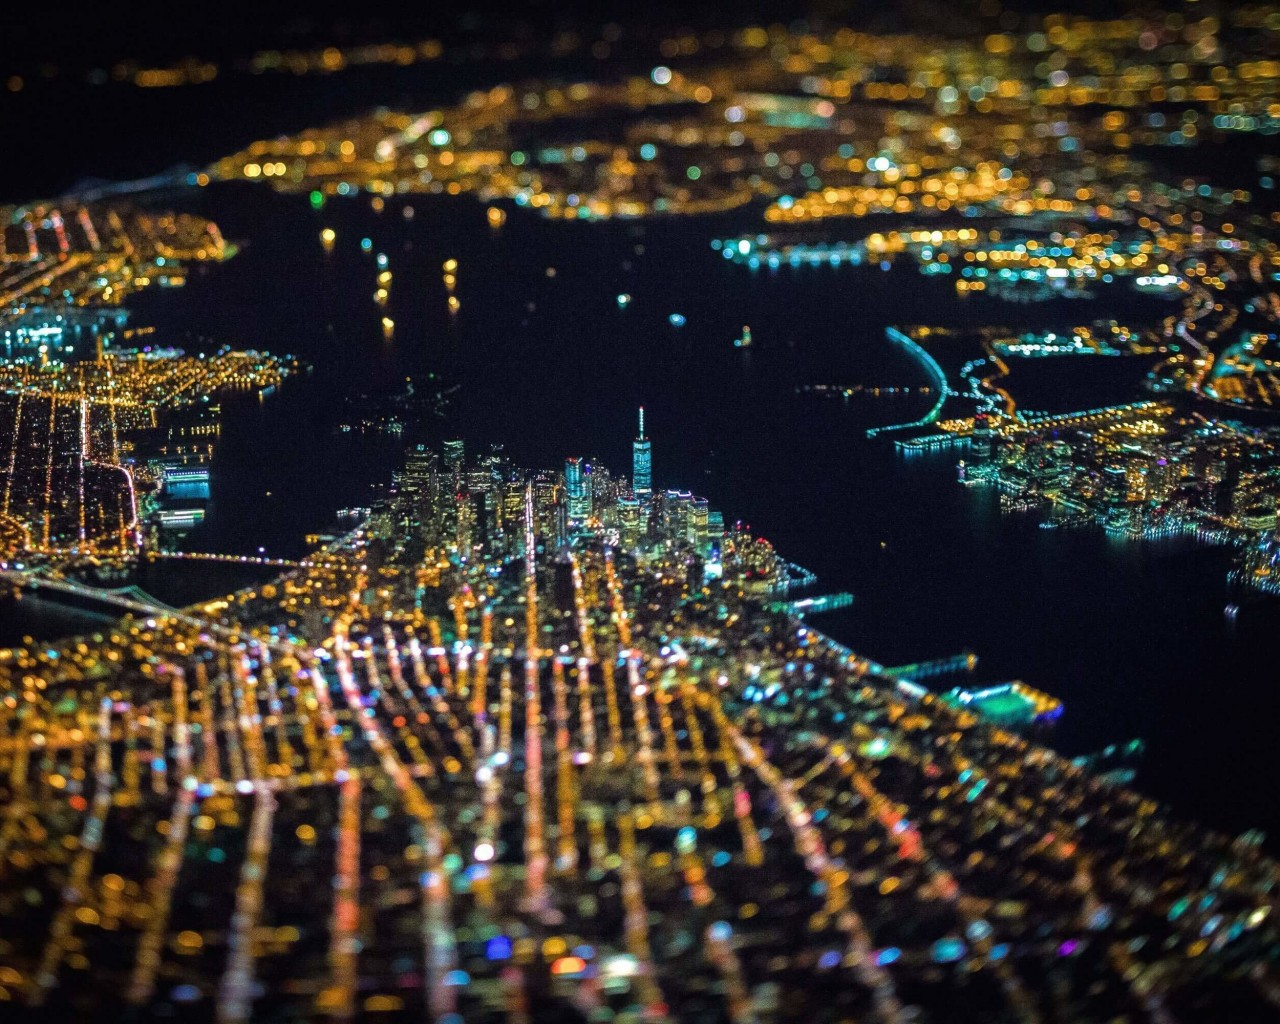 New York City From Above Wallpaper for Desktop 1280x1024